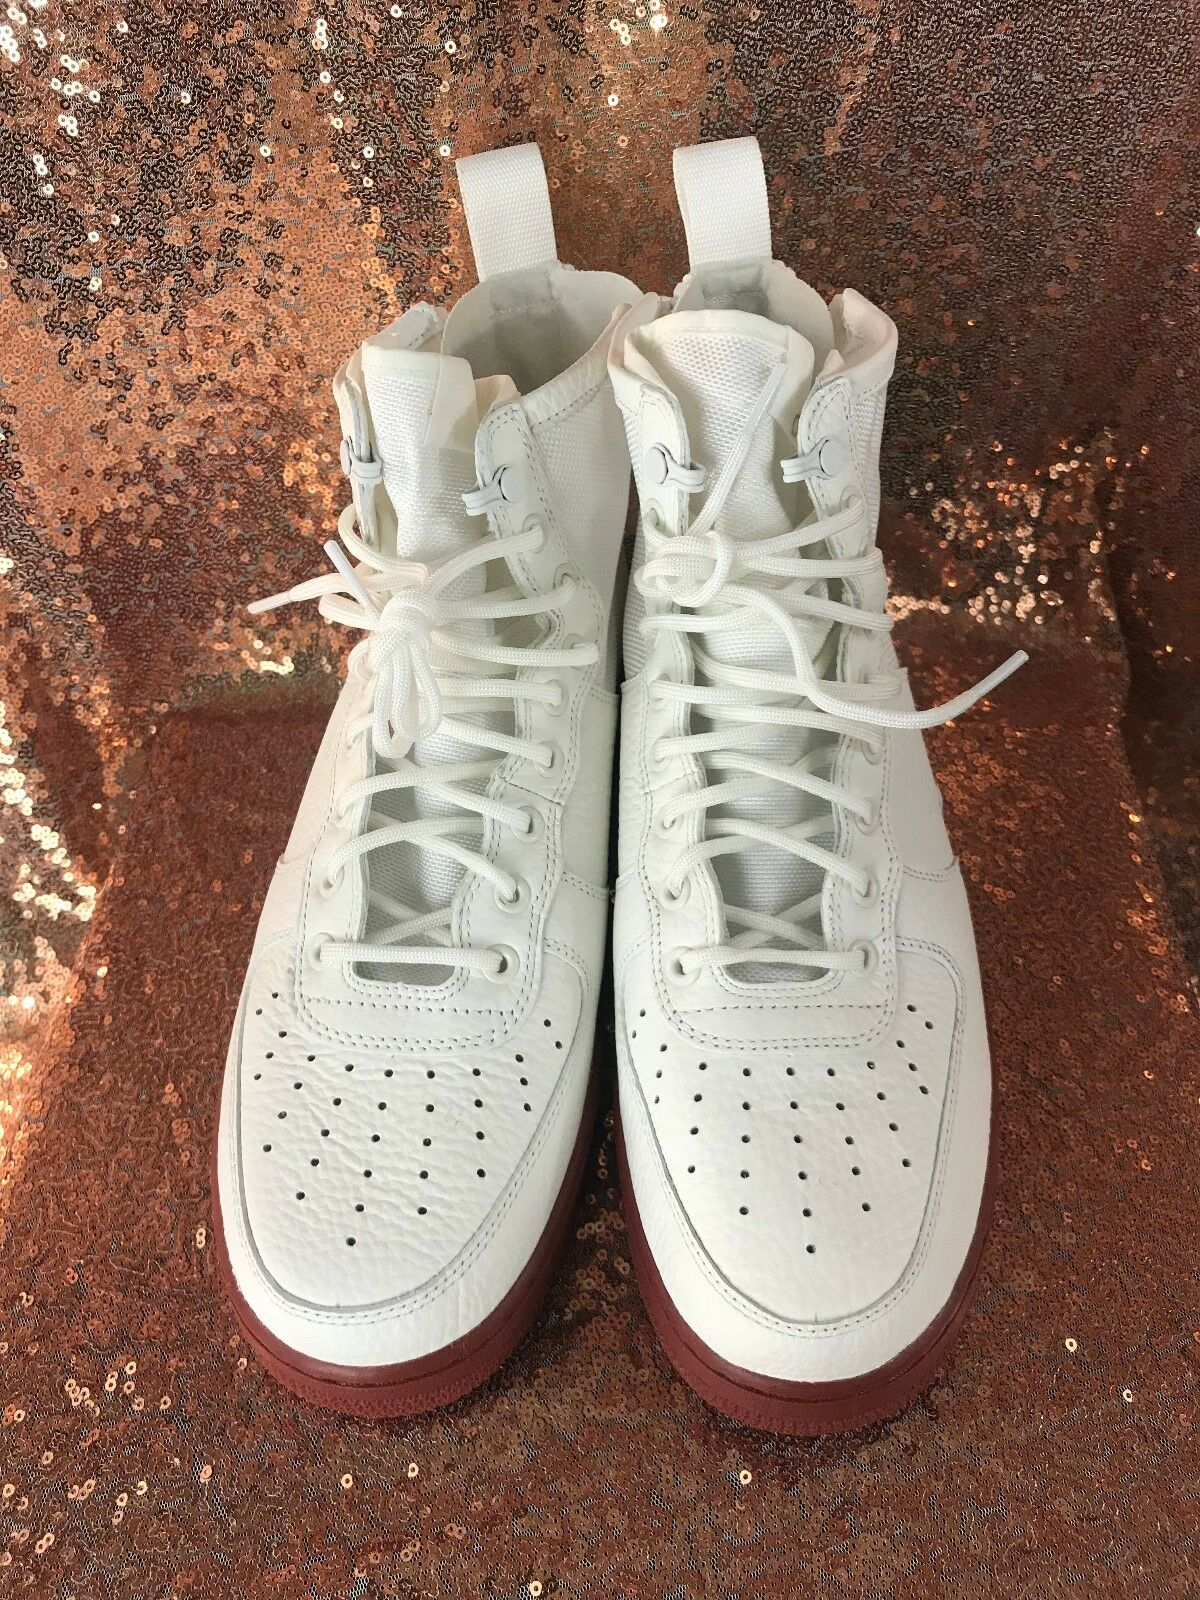 Nike SF Air Force 1 Mid Ivory Mars Stone 917753-100 Men's Size 10.5 SNEAKER